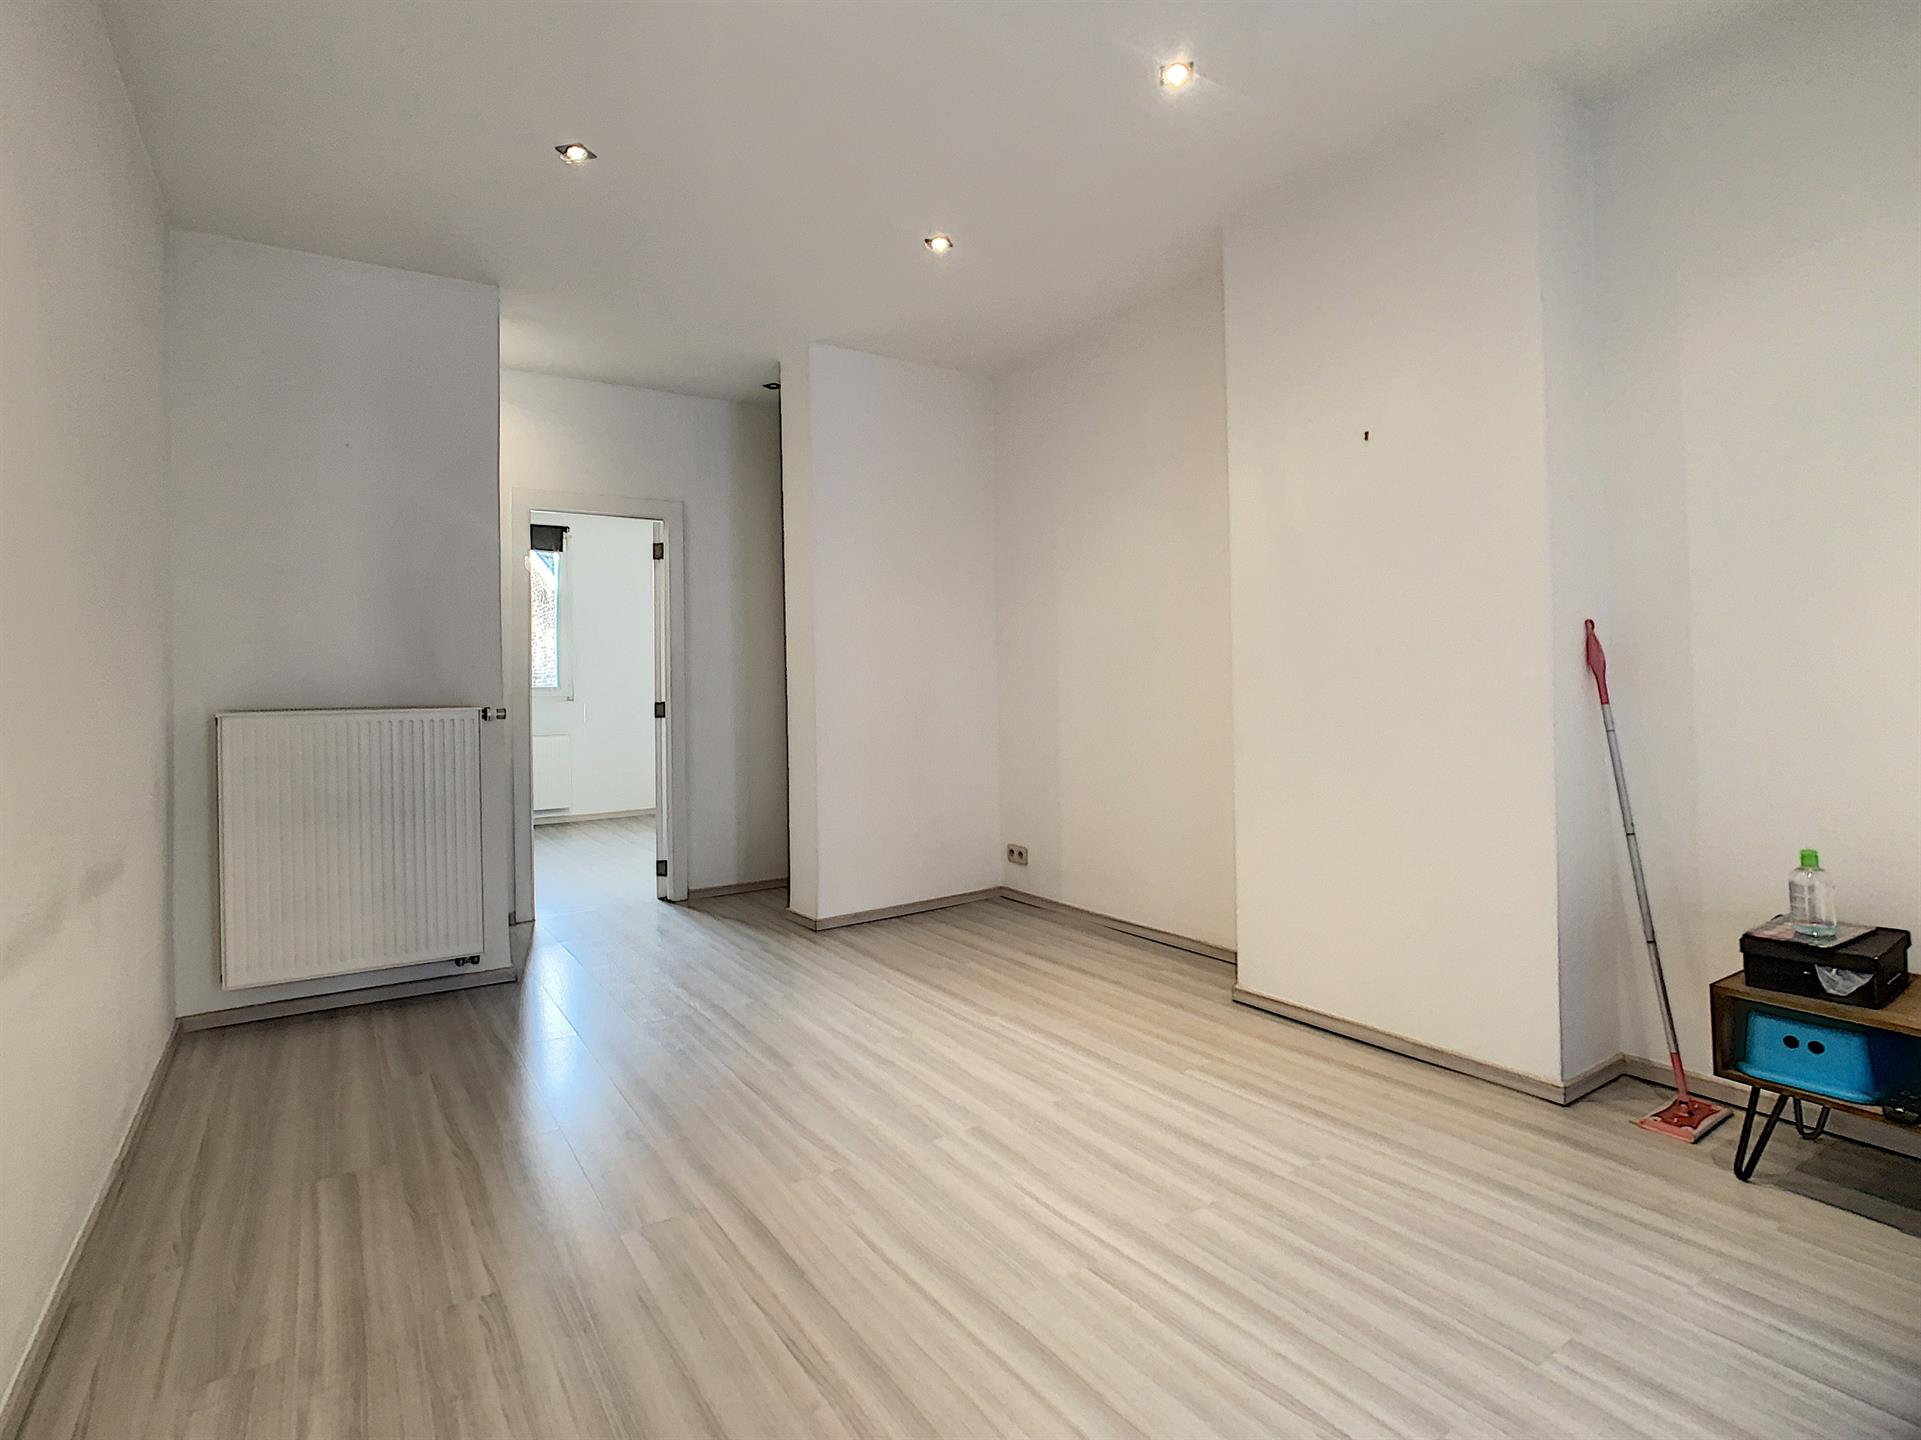 Appartement - Forest - #4242627-6